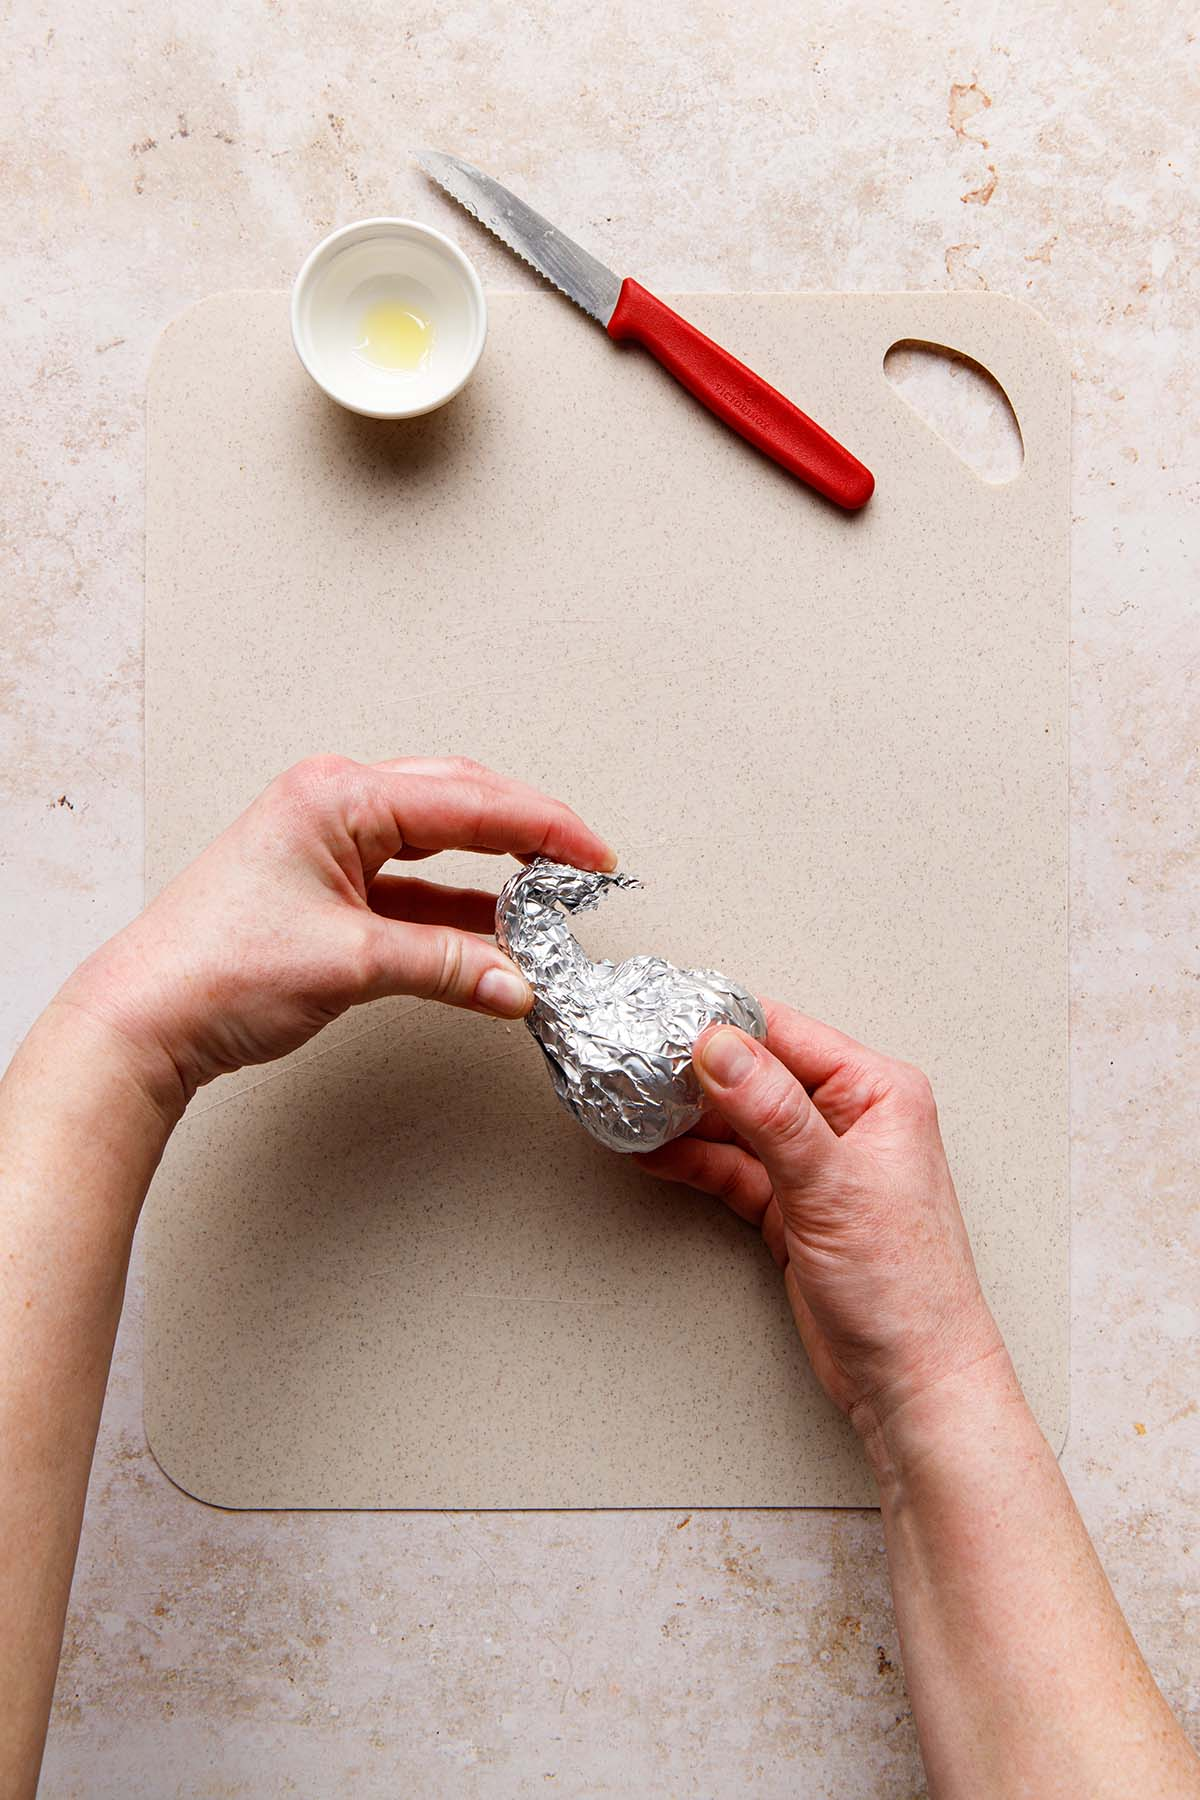 Hands wrapping a small item in aluminum foil.